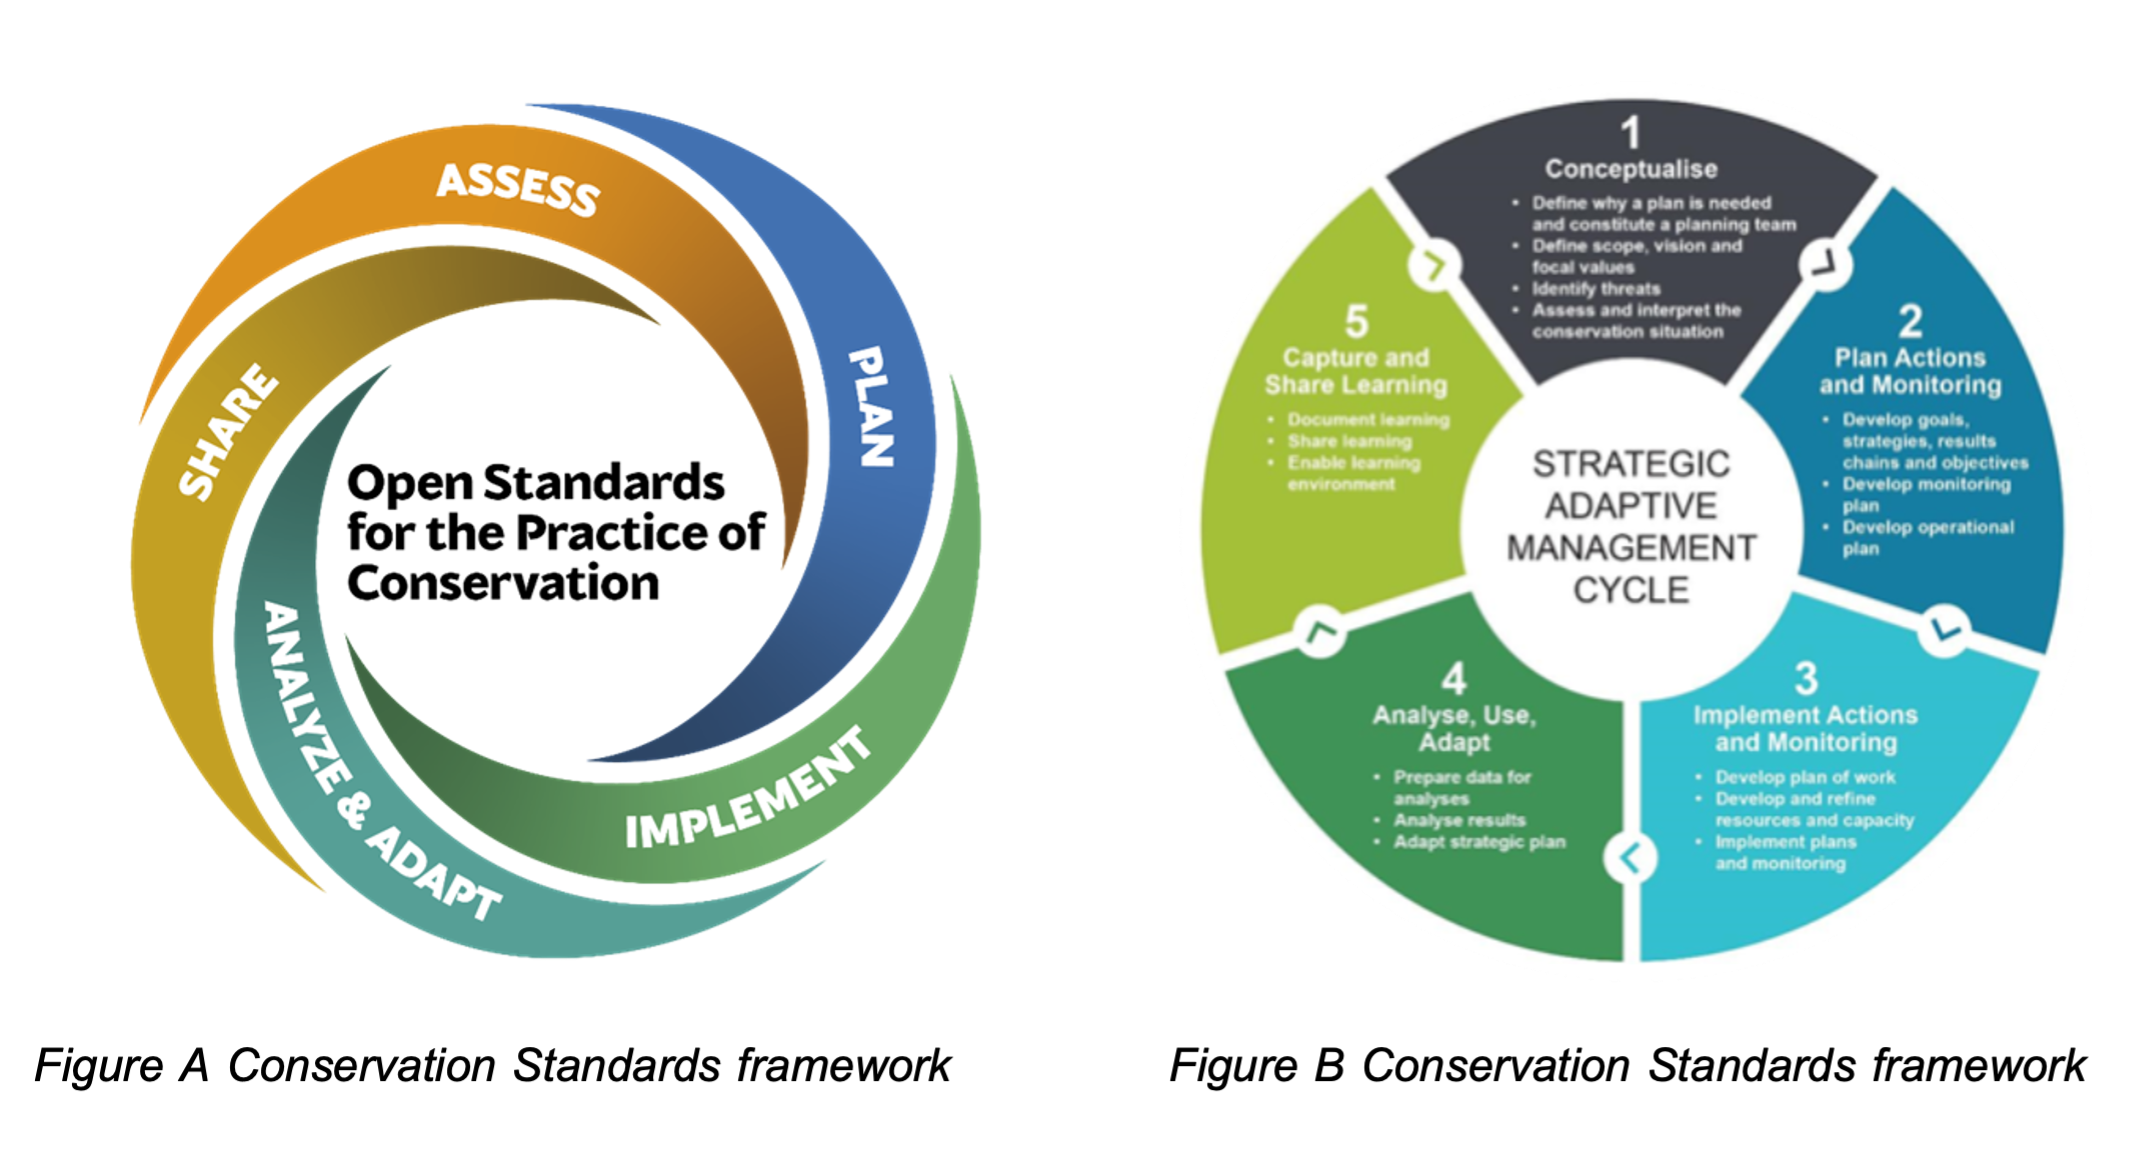 CapeNature's adapted Conservation Standards wheel